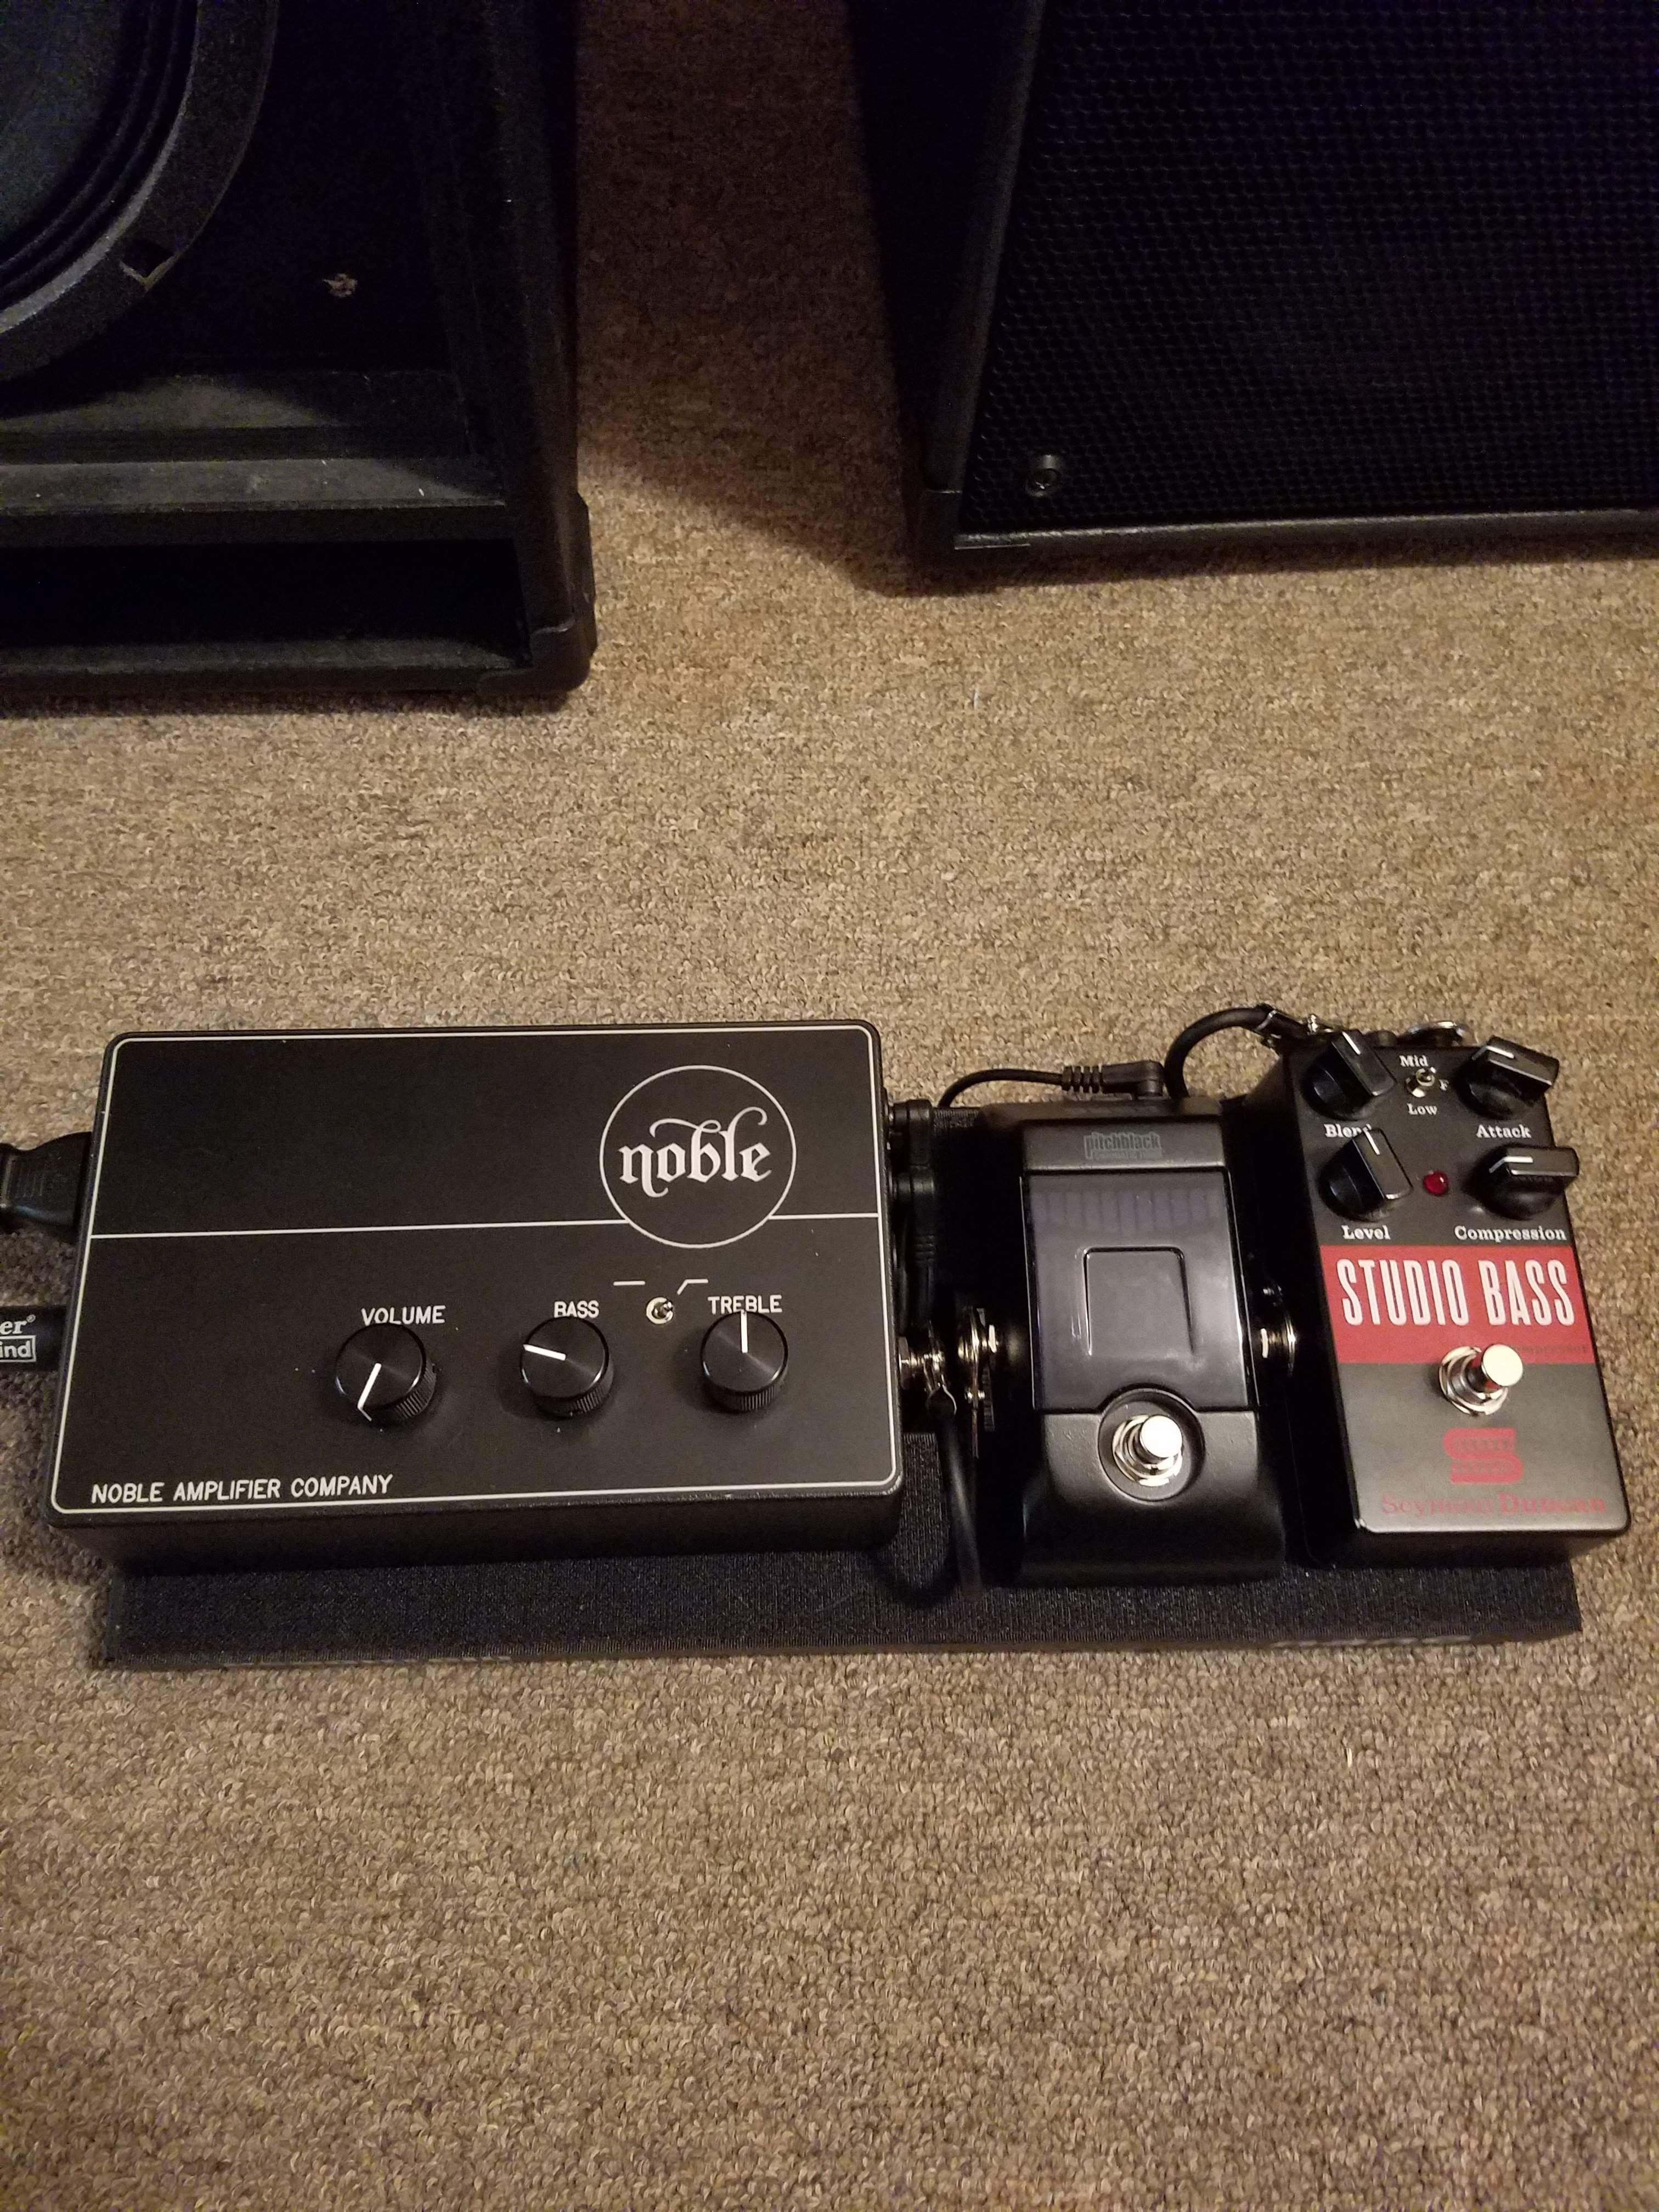 worship bass pedalboards page 49. Black Bedroom Furniture Sets. Home Design Ideas